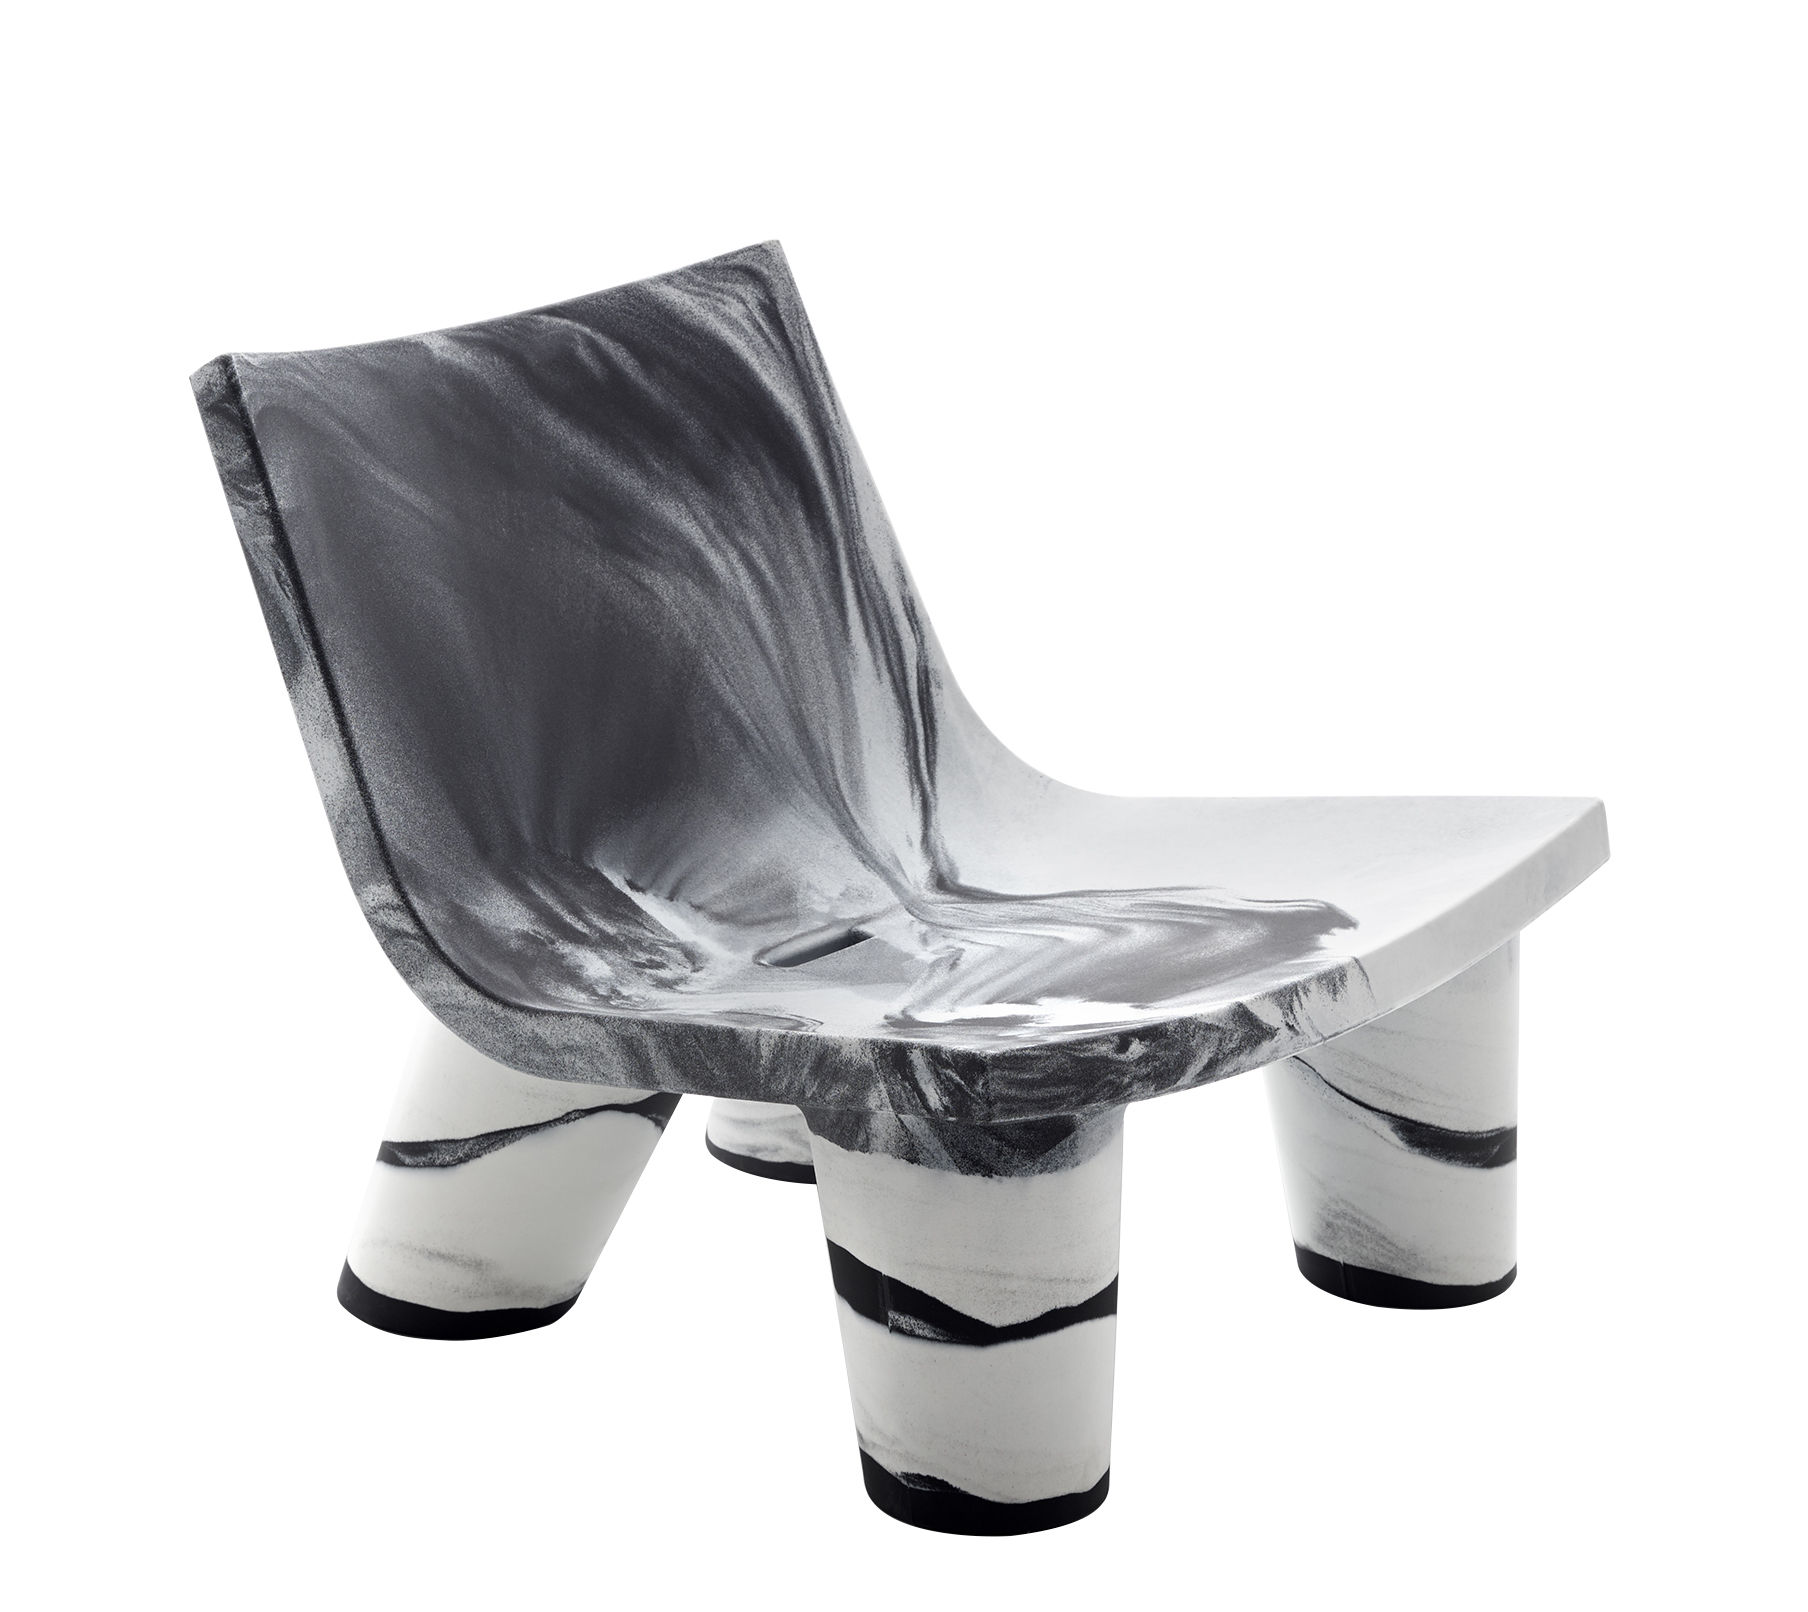 Furniture - Armchairs - Low Lita Low armchair - / 10-year limited edition by Slide - Black & white - Polythene